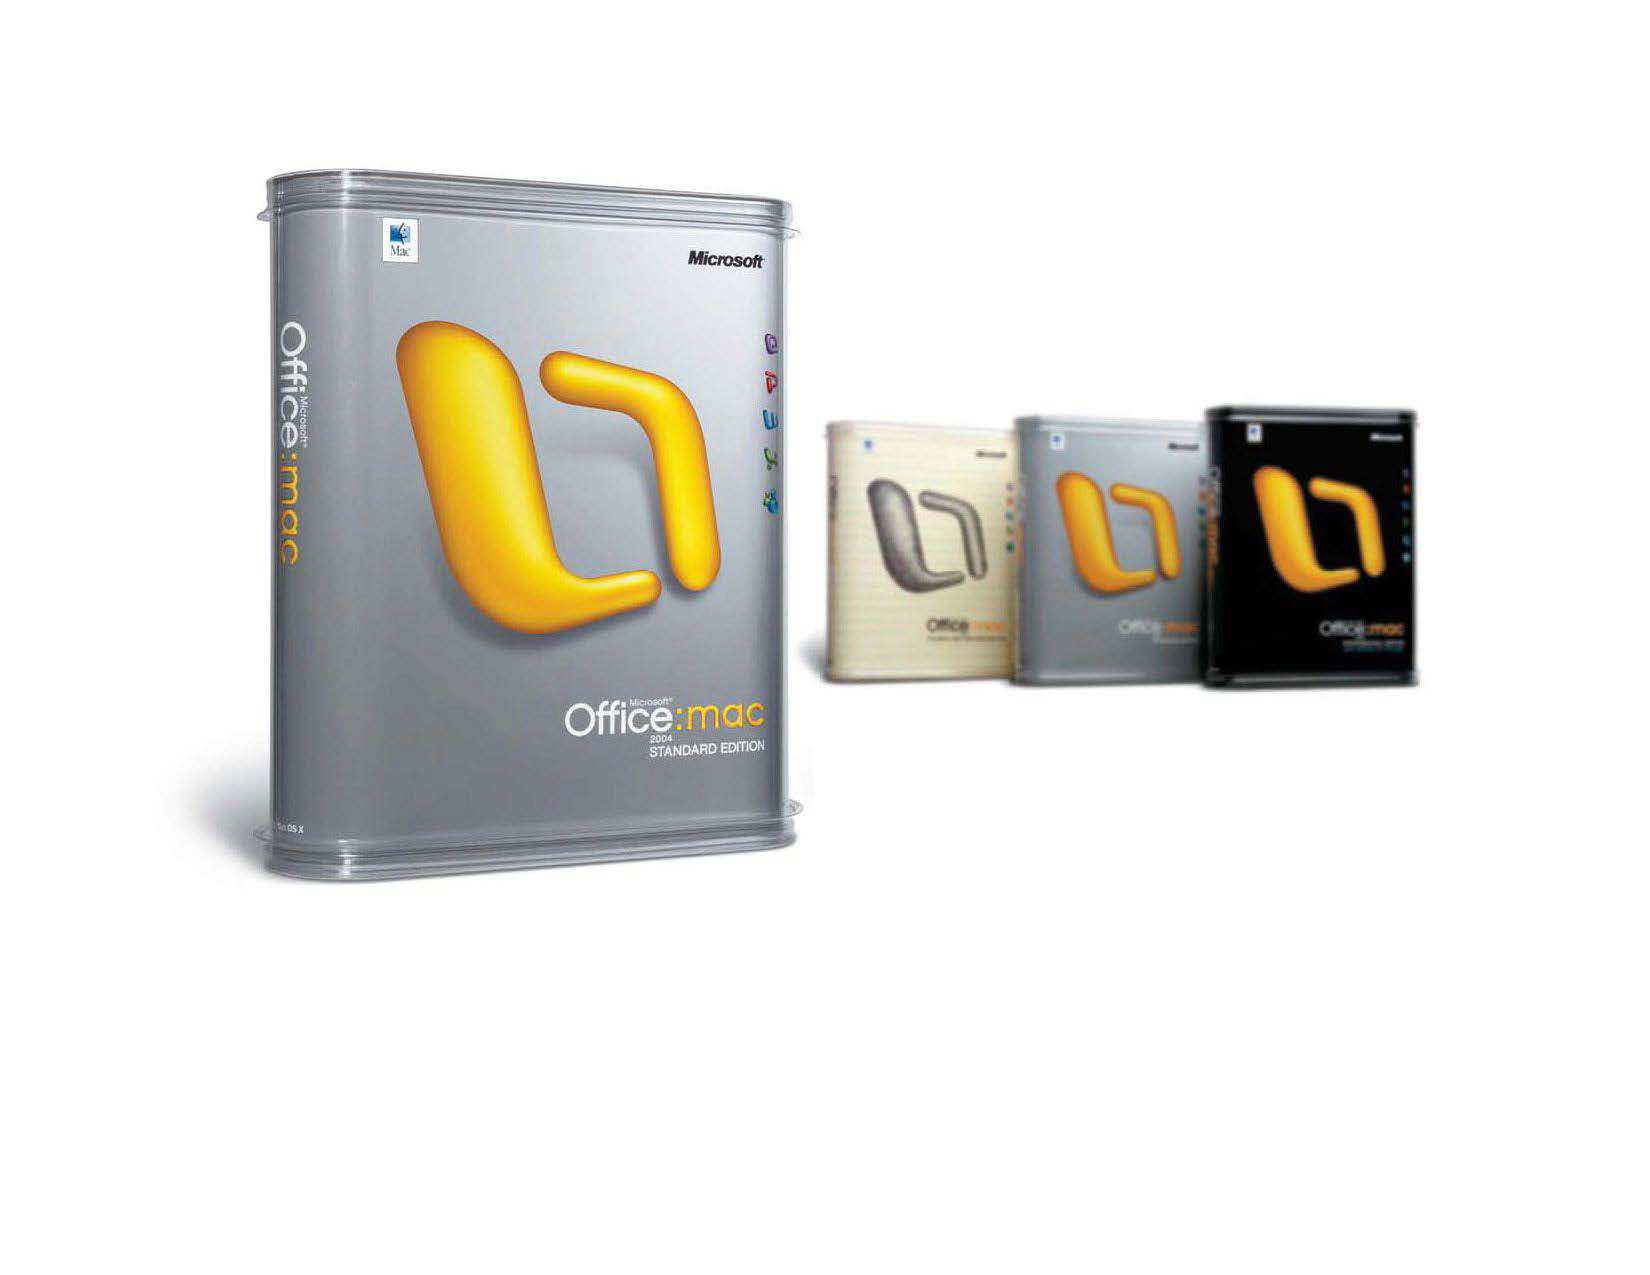 Office:Mac 2005 by Microsoft